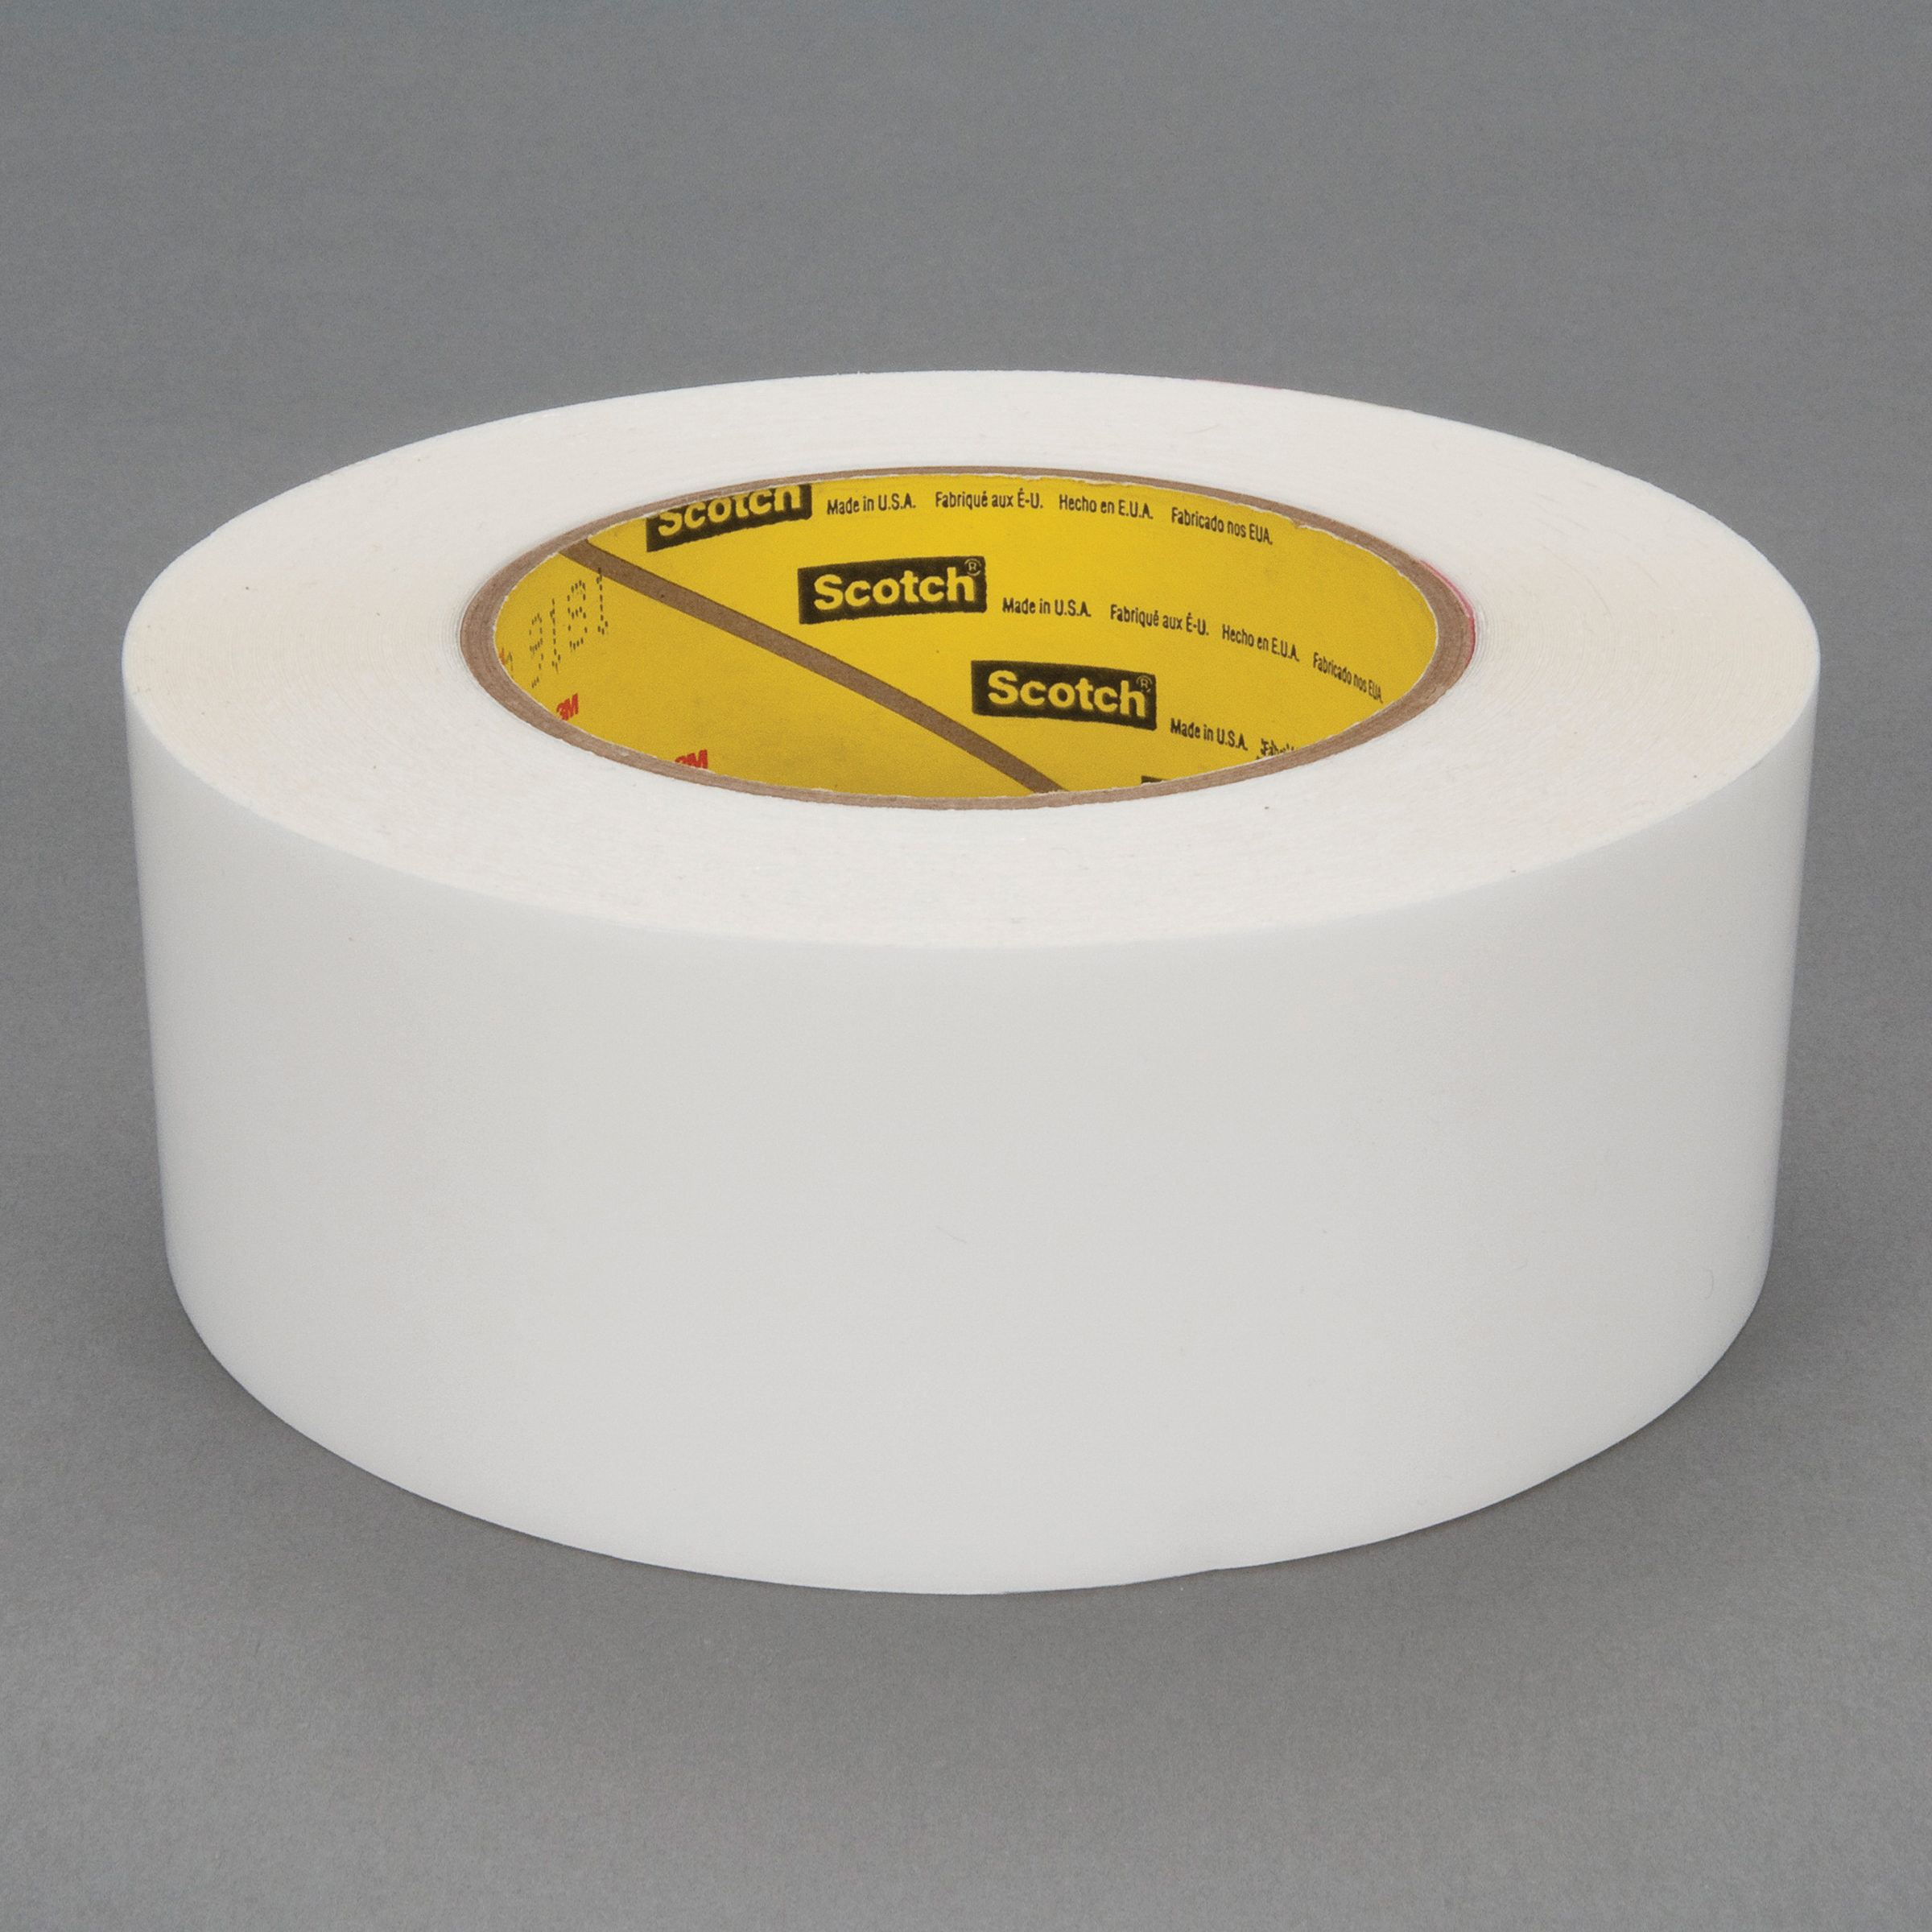 3M™ 021200-26625 High Tack Squeak Reduction Tape, 72 yd L x 2 in W, 7 mil THK, Acrylic Adhesive, UHMWP Film Backing, Transparent